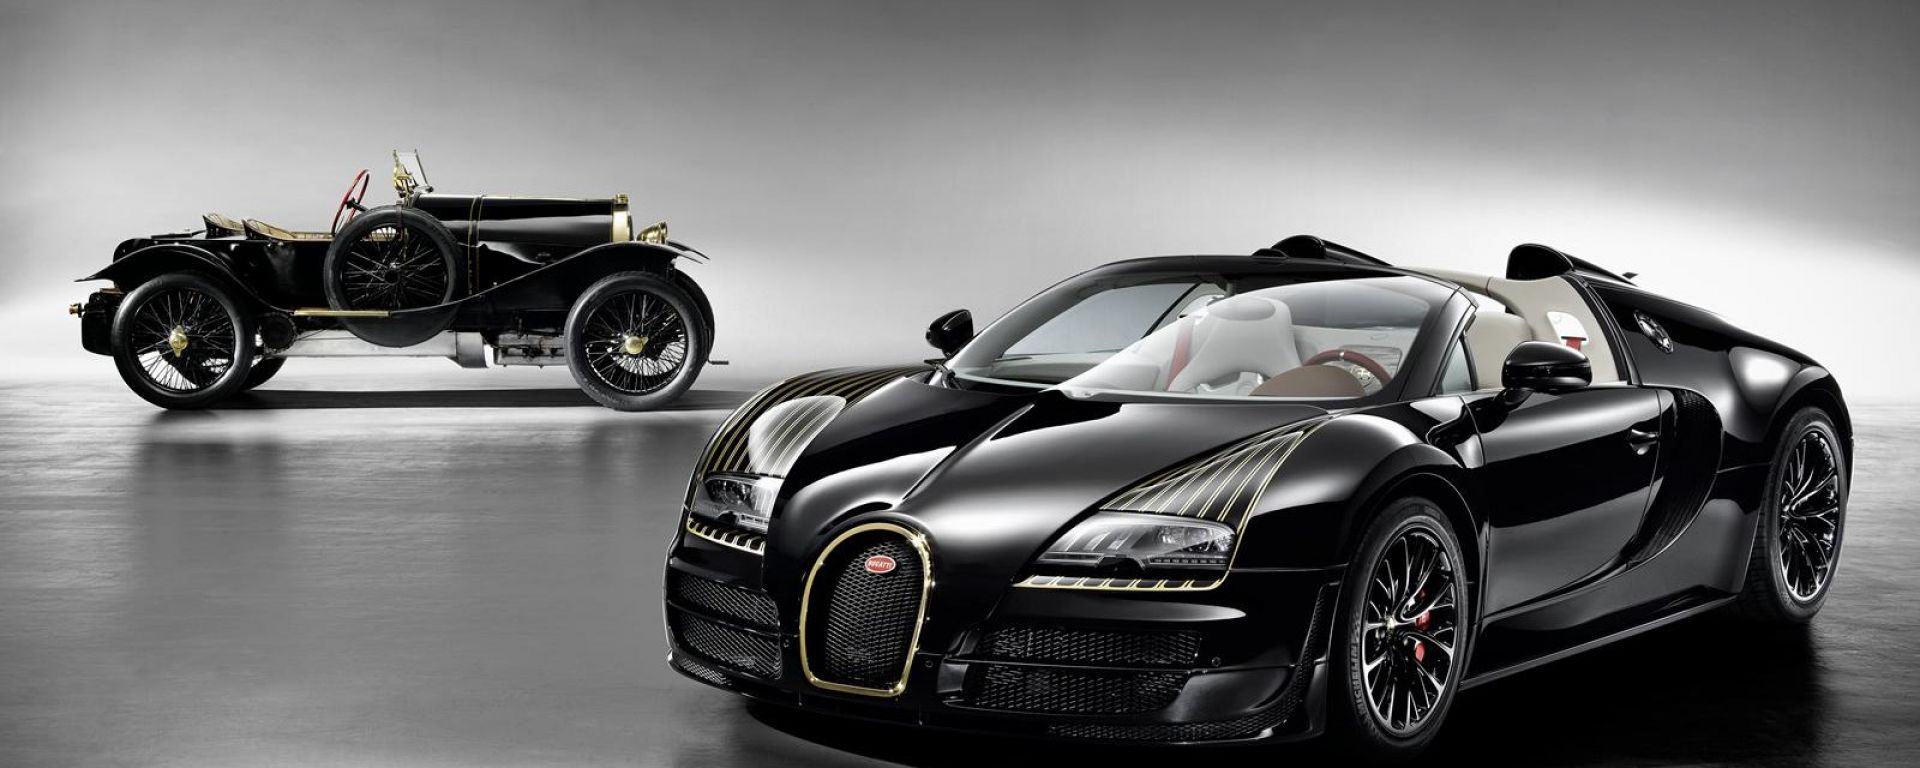 prossimamente bugatti veyron grand sport vitesse black bess motorbox. Black Bedroom Furniture Sets. Home Design Ideas